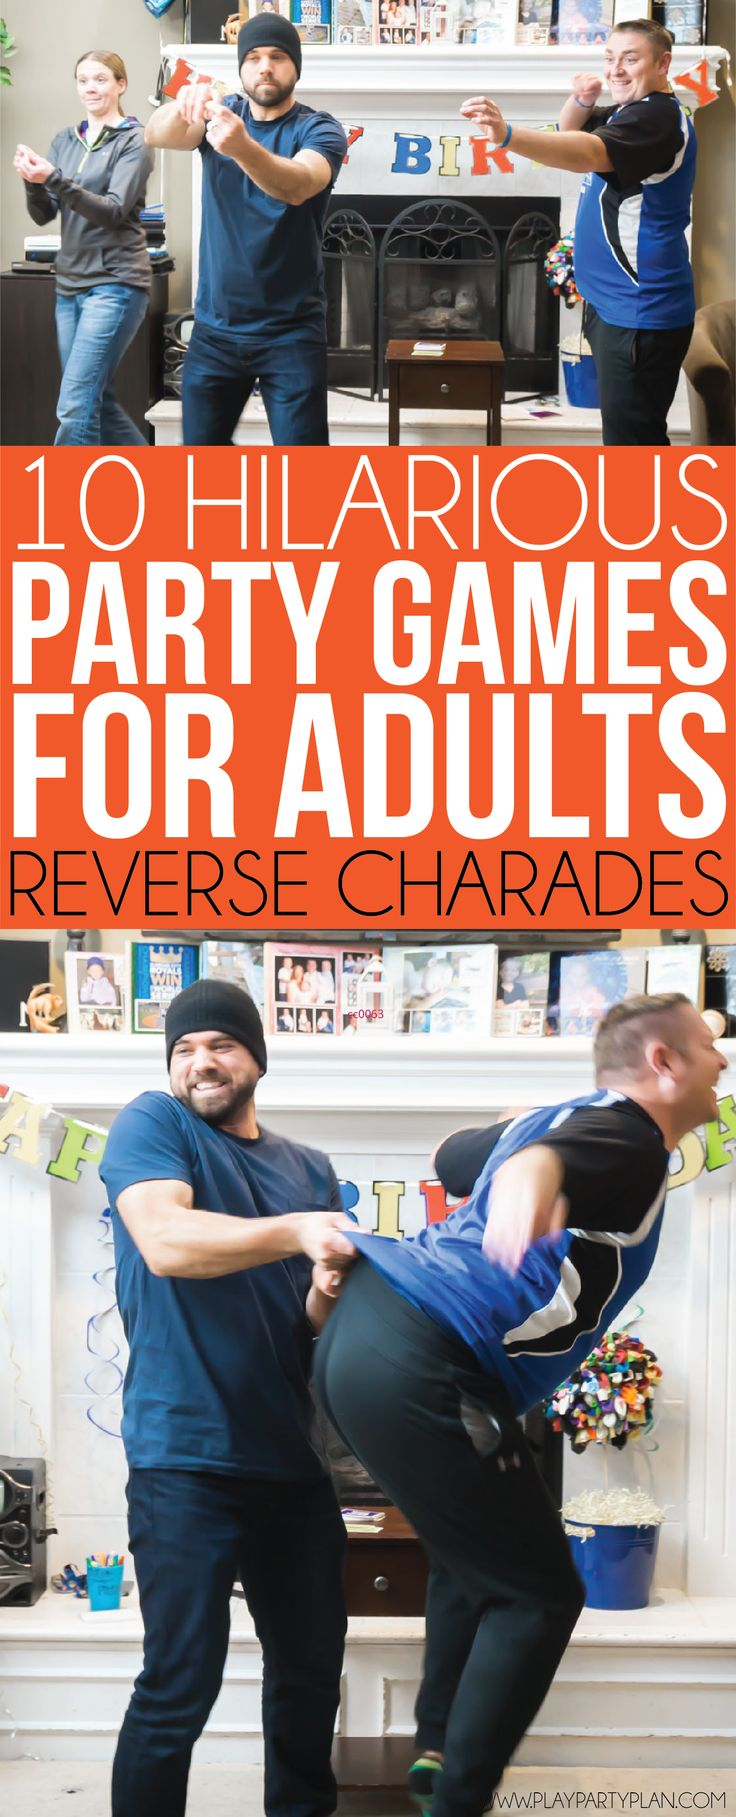 19 Hilarious Party Games for Adults Birthday games for